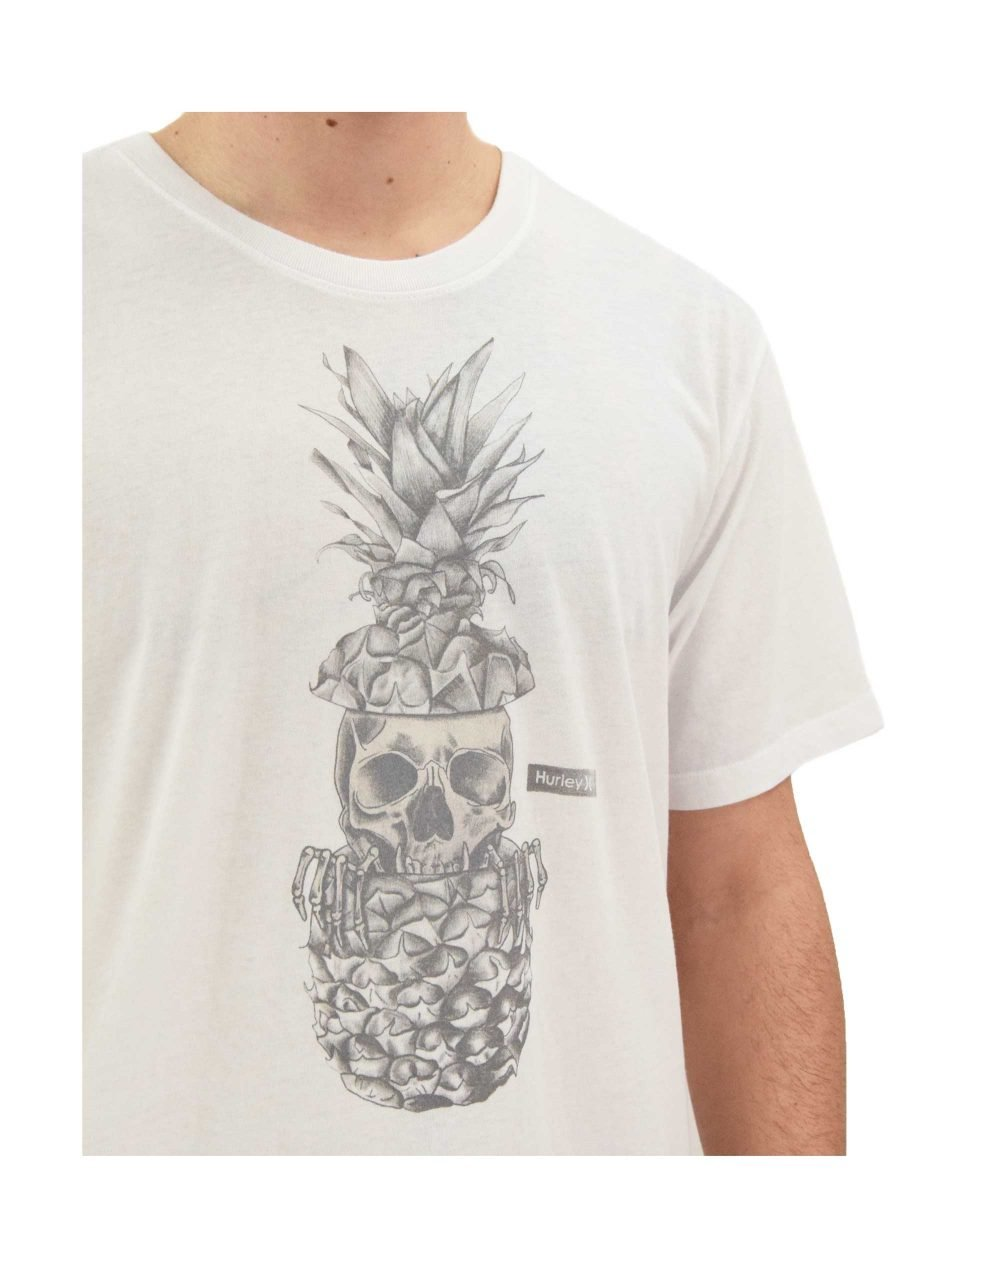 Hurley Everyday Washed Peeks Tee (CZ6042-H100) White